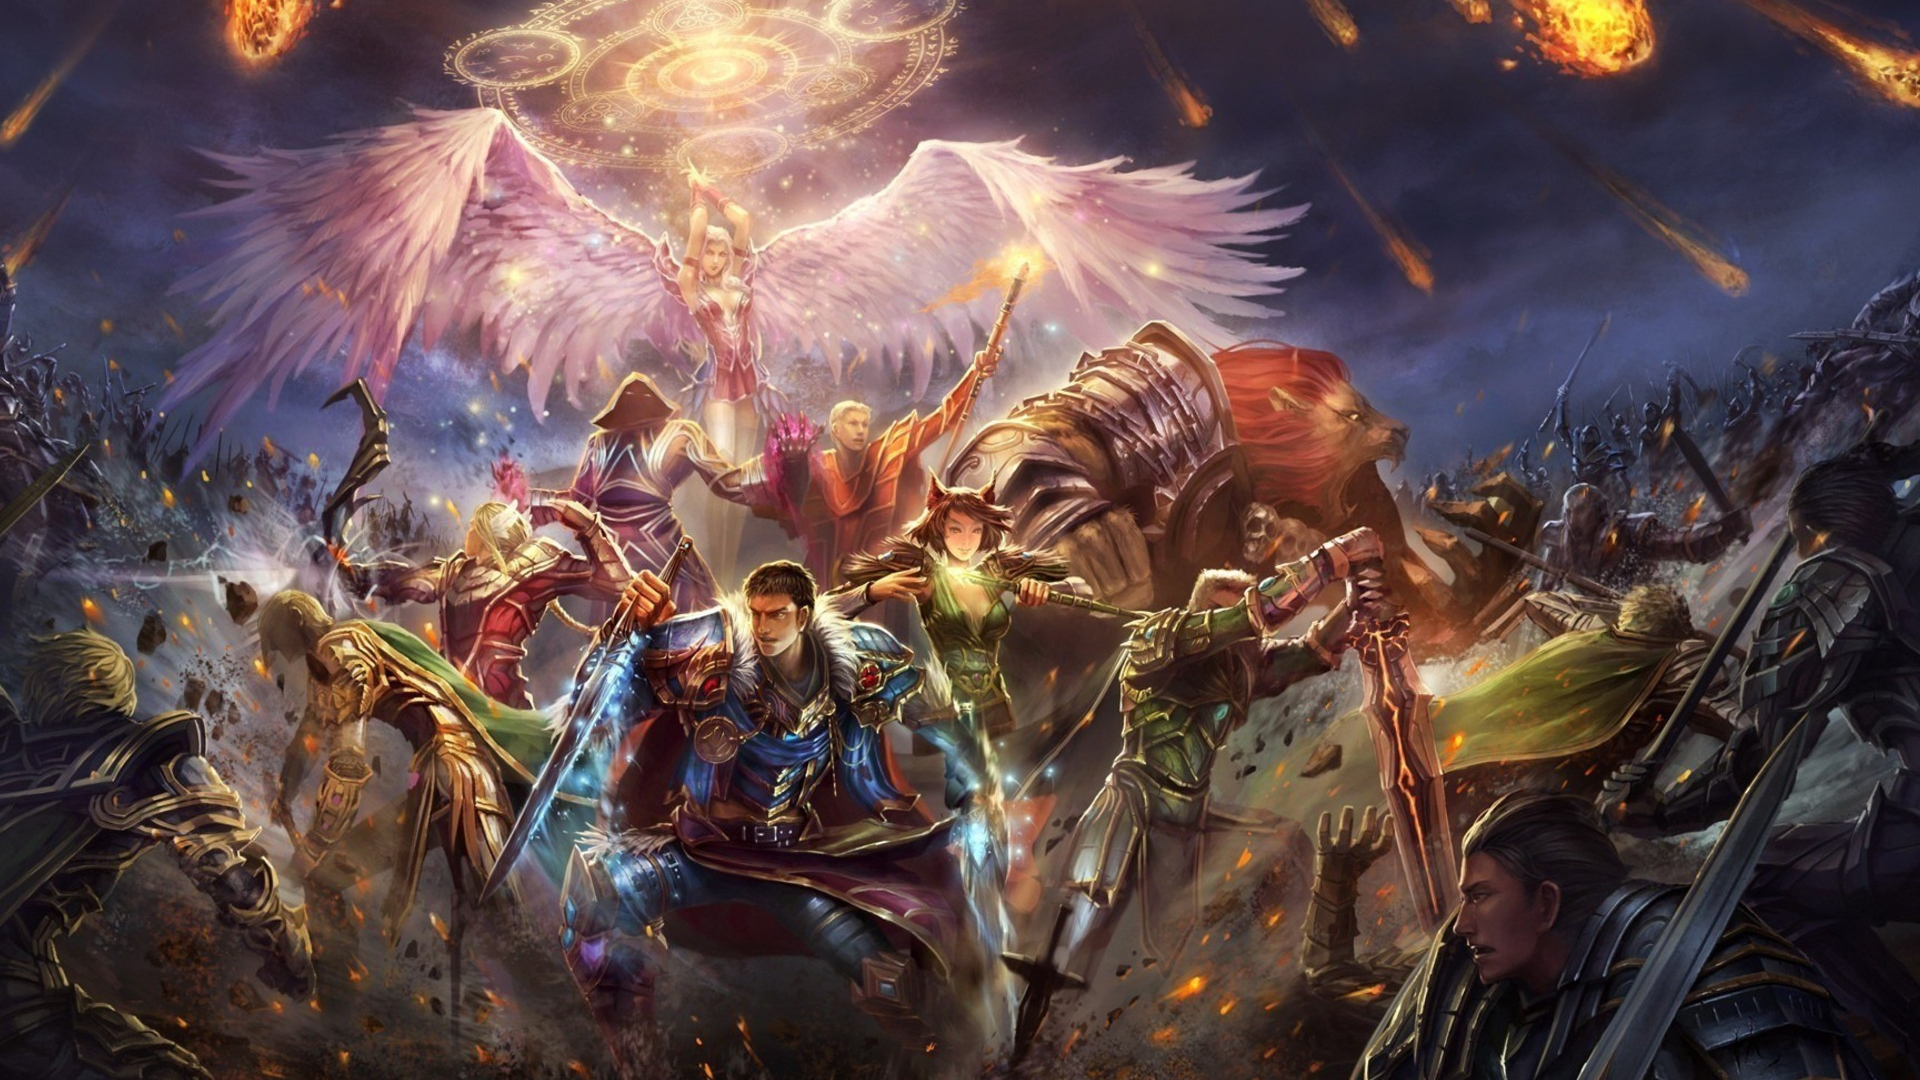 Epic Battle Fantasy 4 Computer Wallpapers Desktop 1920x1080